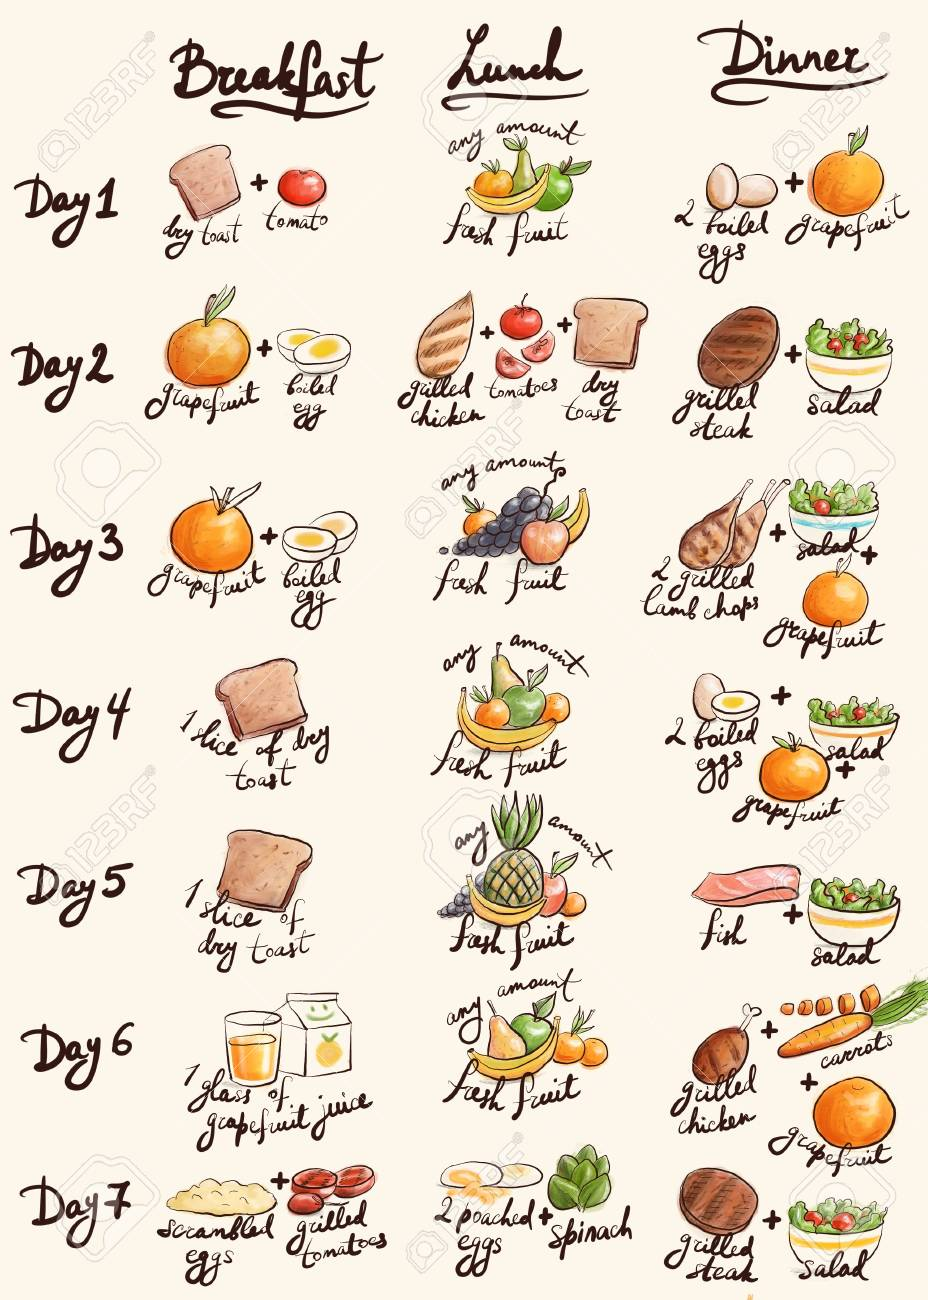 Looking for a 7 day diet plan